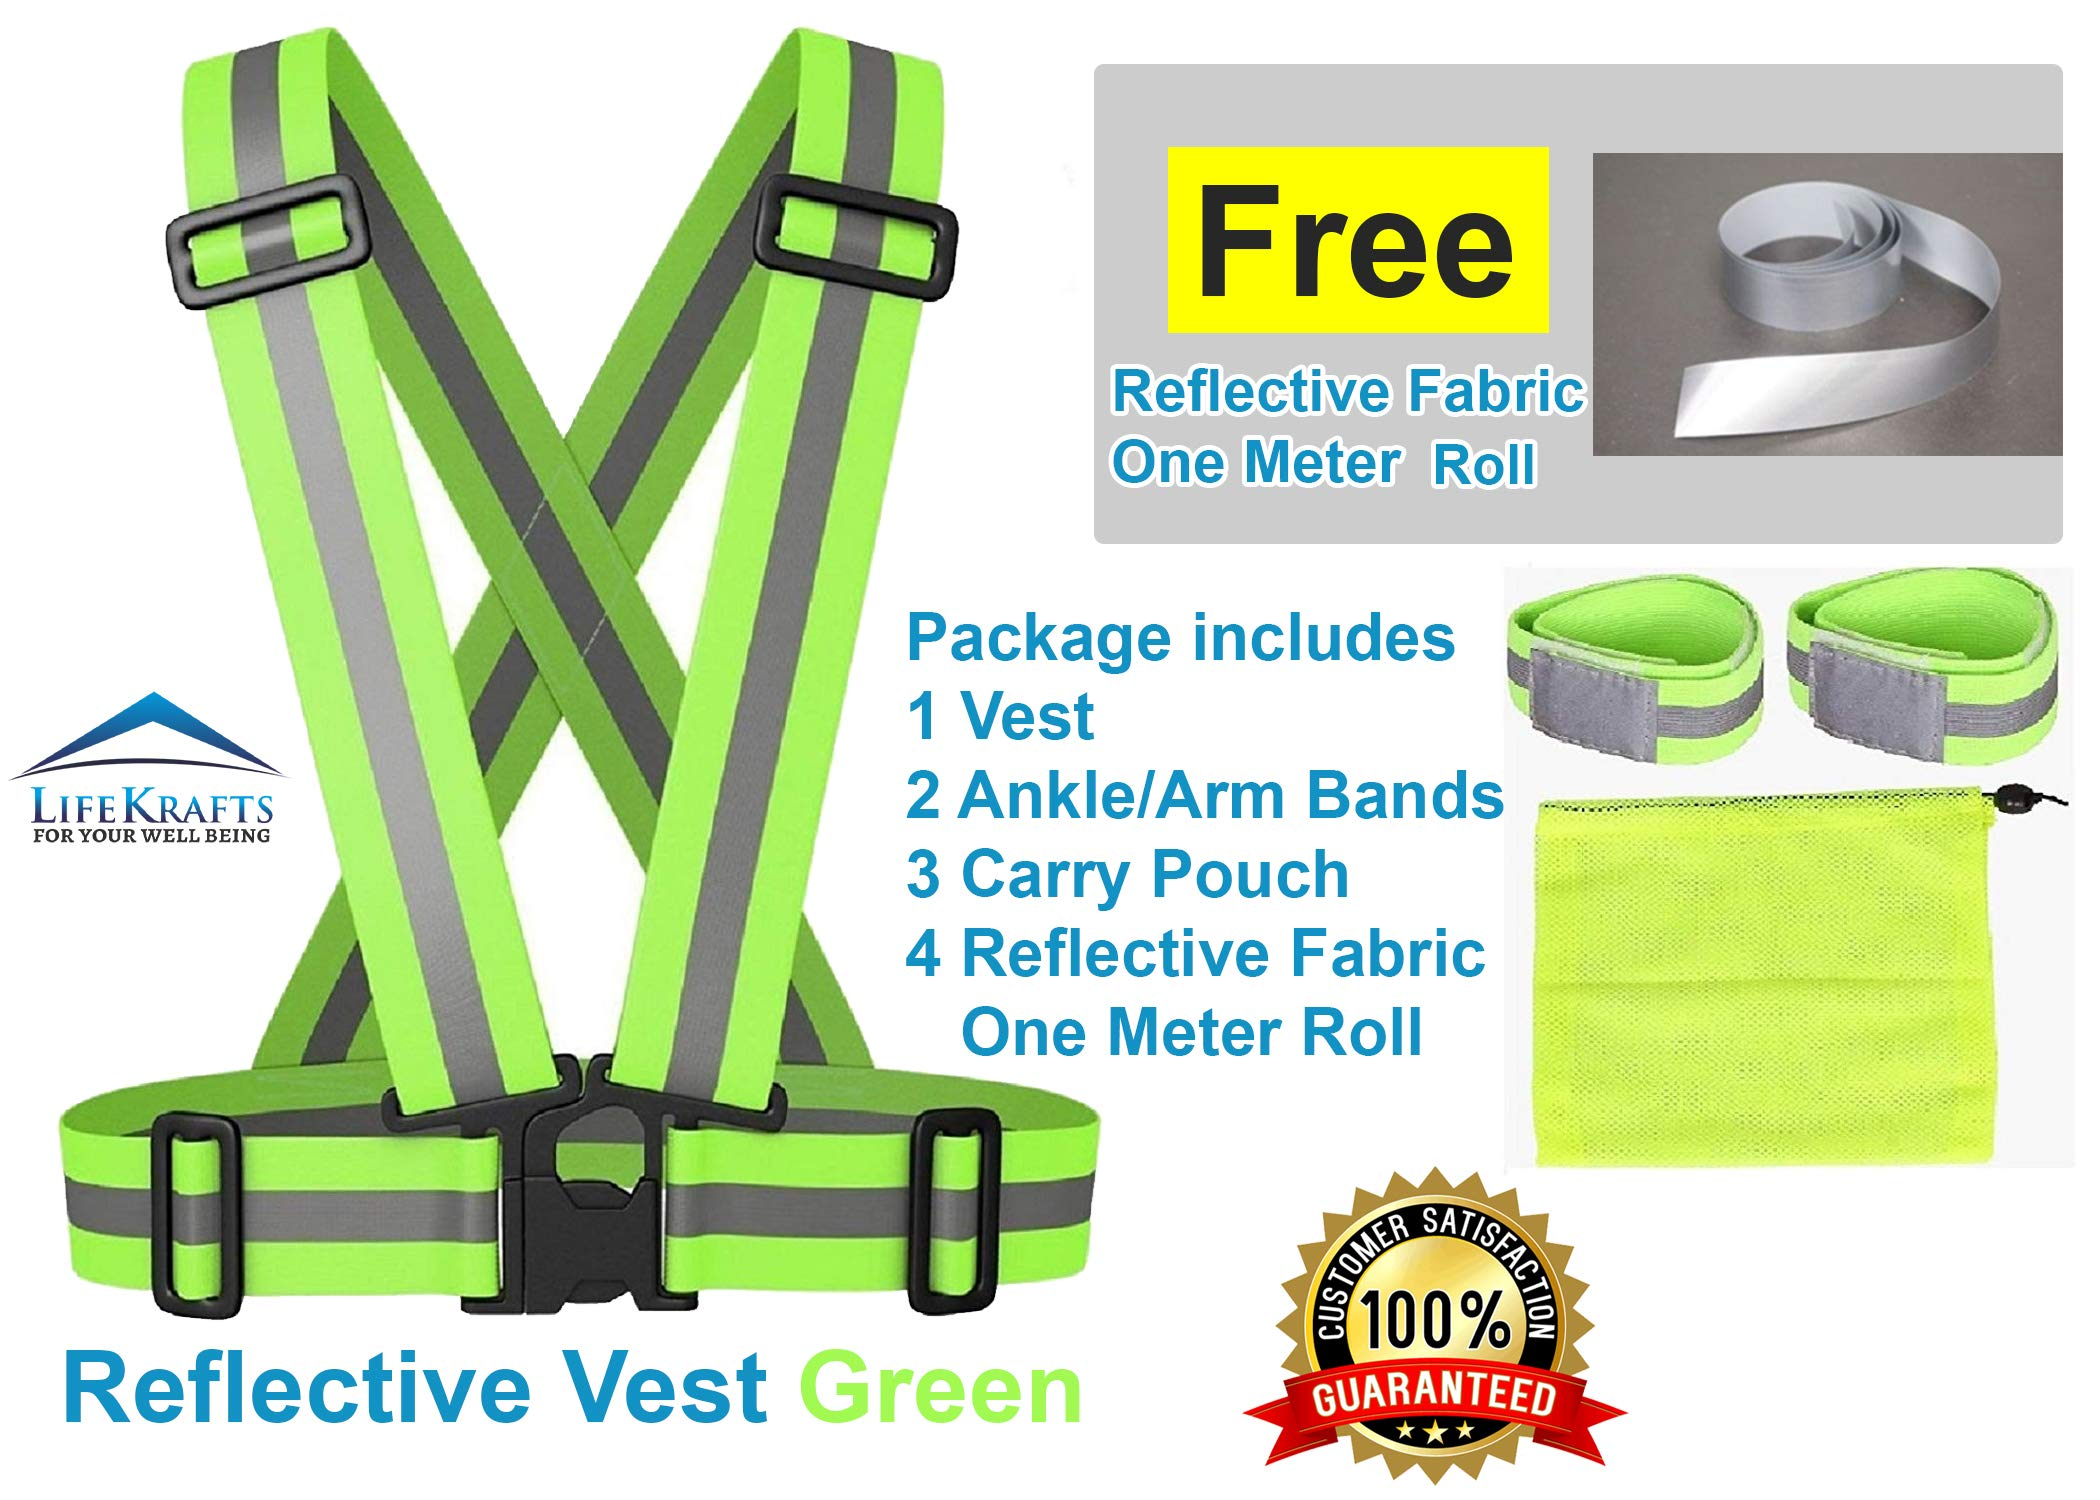 Color Myles Safety Reflective Vest for Outdoor Sports Such as Running, Jogging, Cycling, Walking and Hiking - Elastic, Lightweight, Adjustable and High Visibility product image